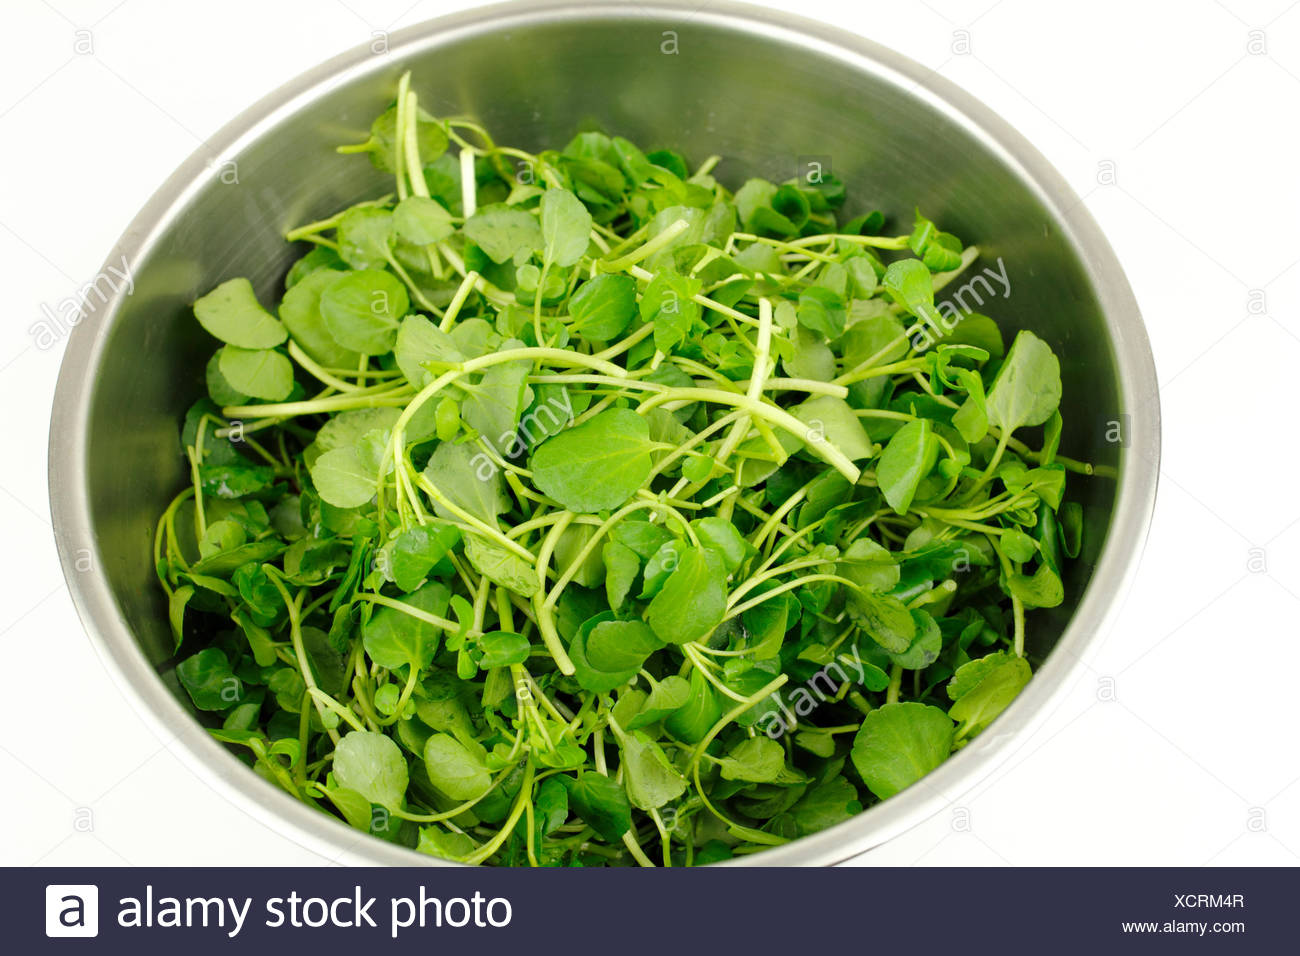 Close up of stainless steel bowl on white with small green watercress leaf vegetables used in salads and as a garnish for sandwiches because of itÕs delicious taste and healthy nutritional value. - Stock Image